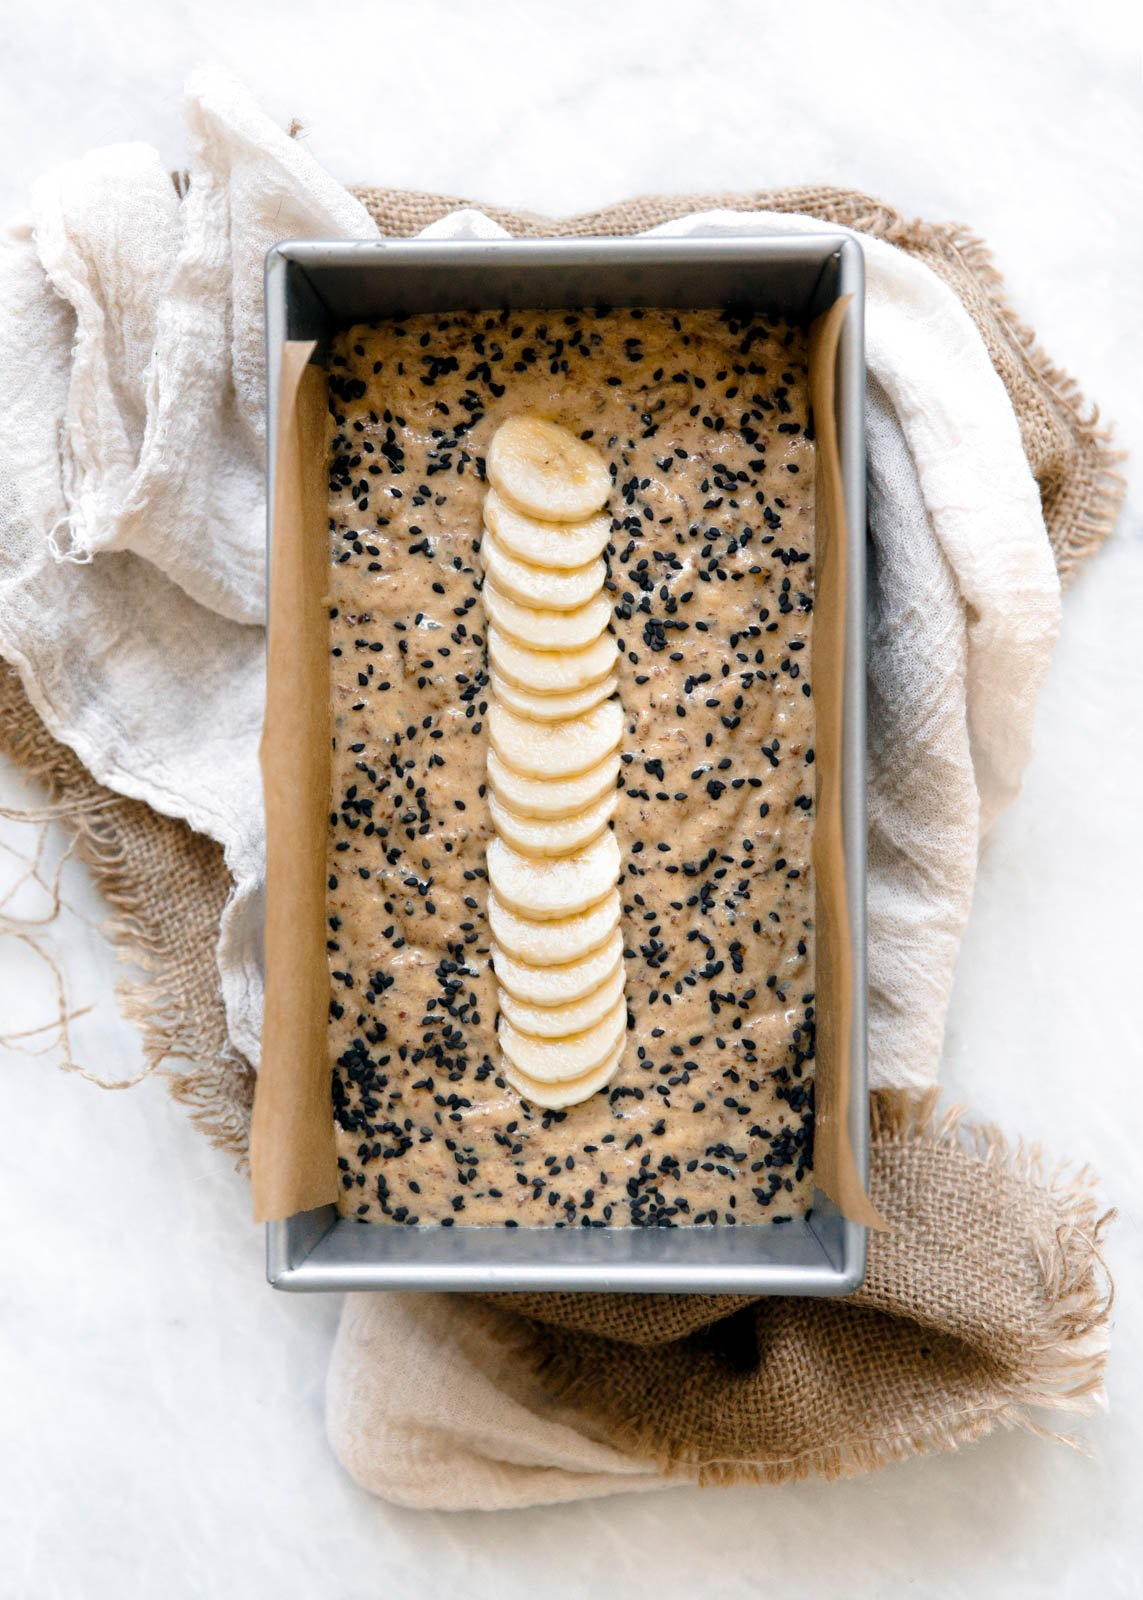 tahini banana bread batter in a loaf pan sitting on a counter with a towel underneath